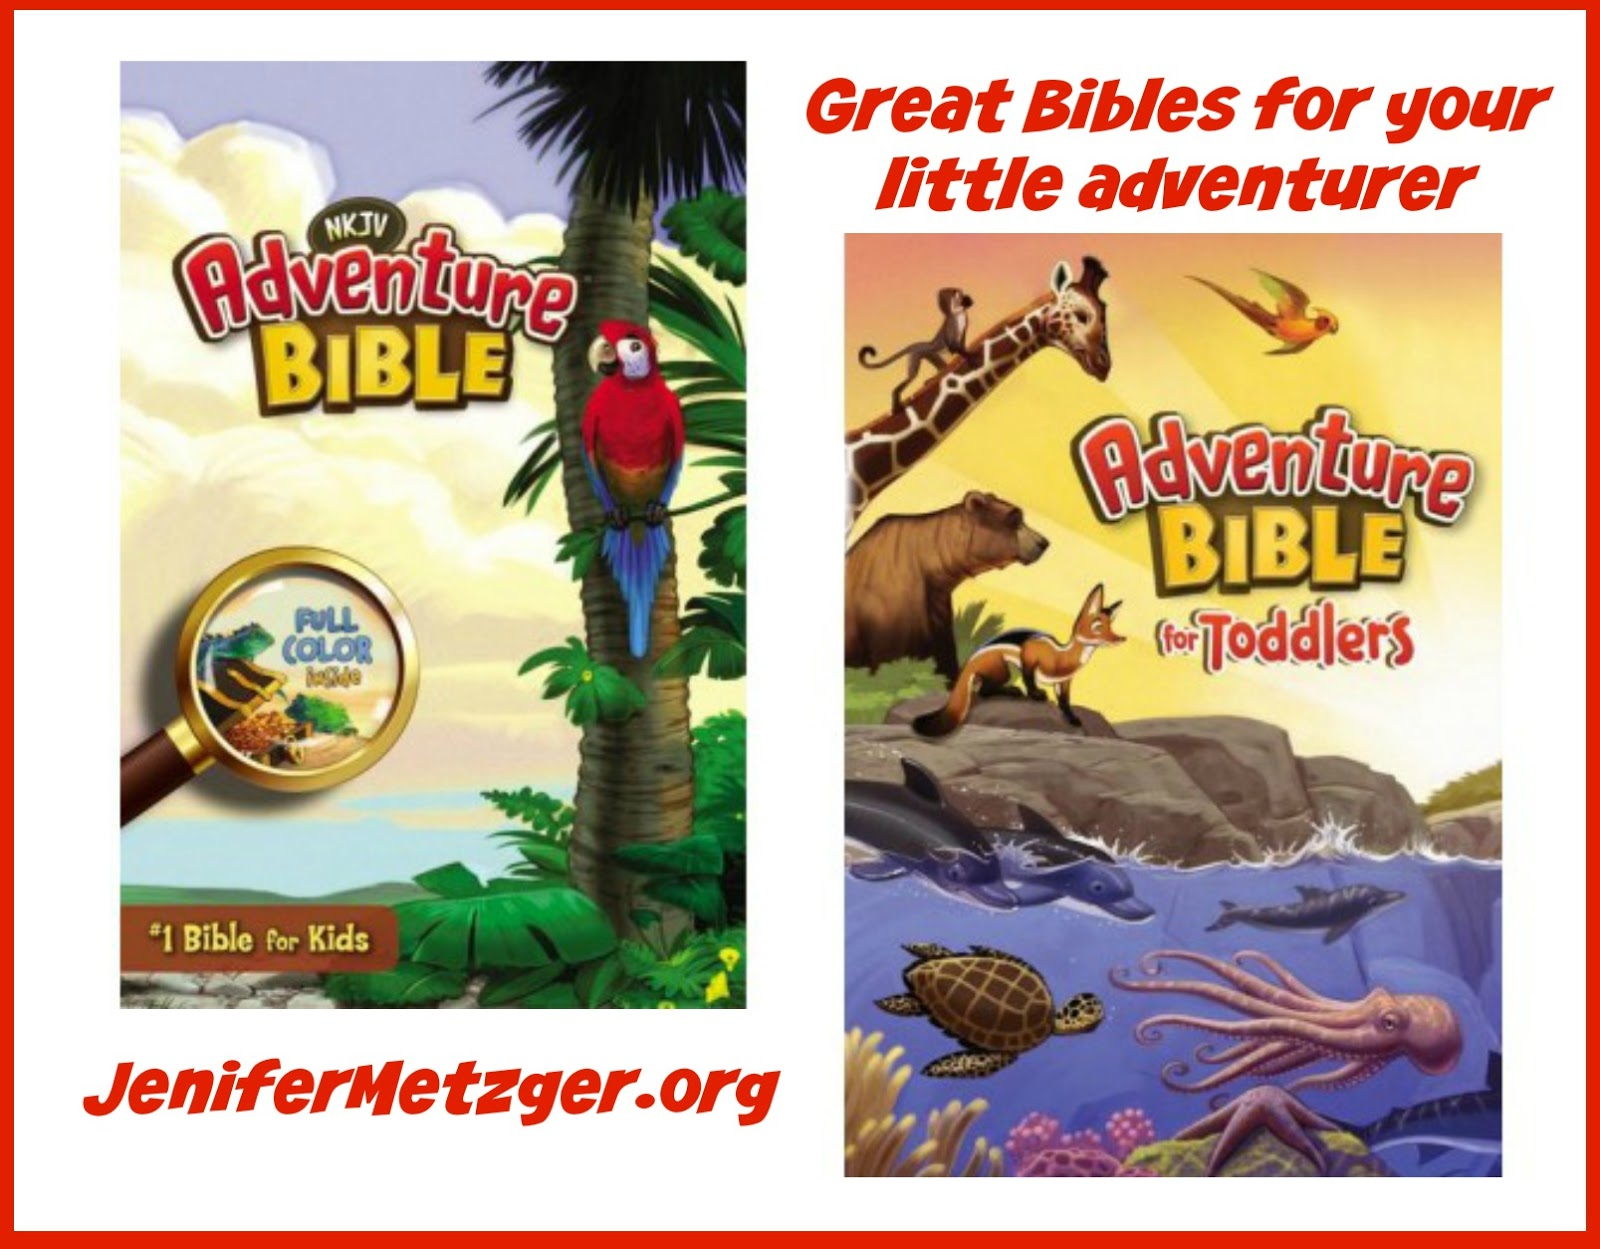 Great Bibles for your little adventurer. #kidsBibles #Bibles #parenting #children